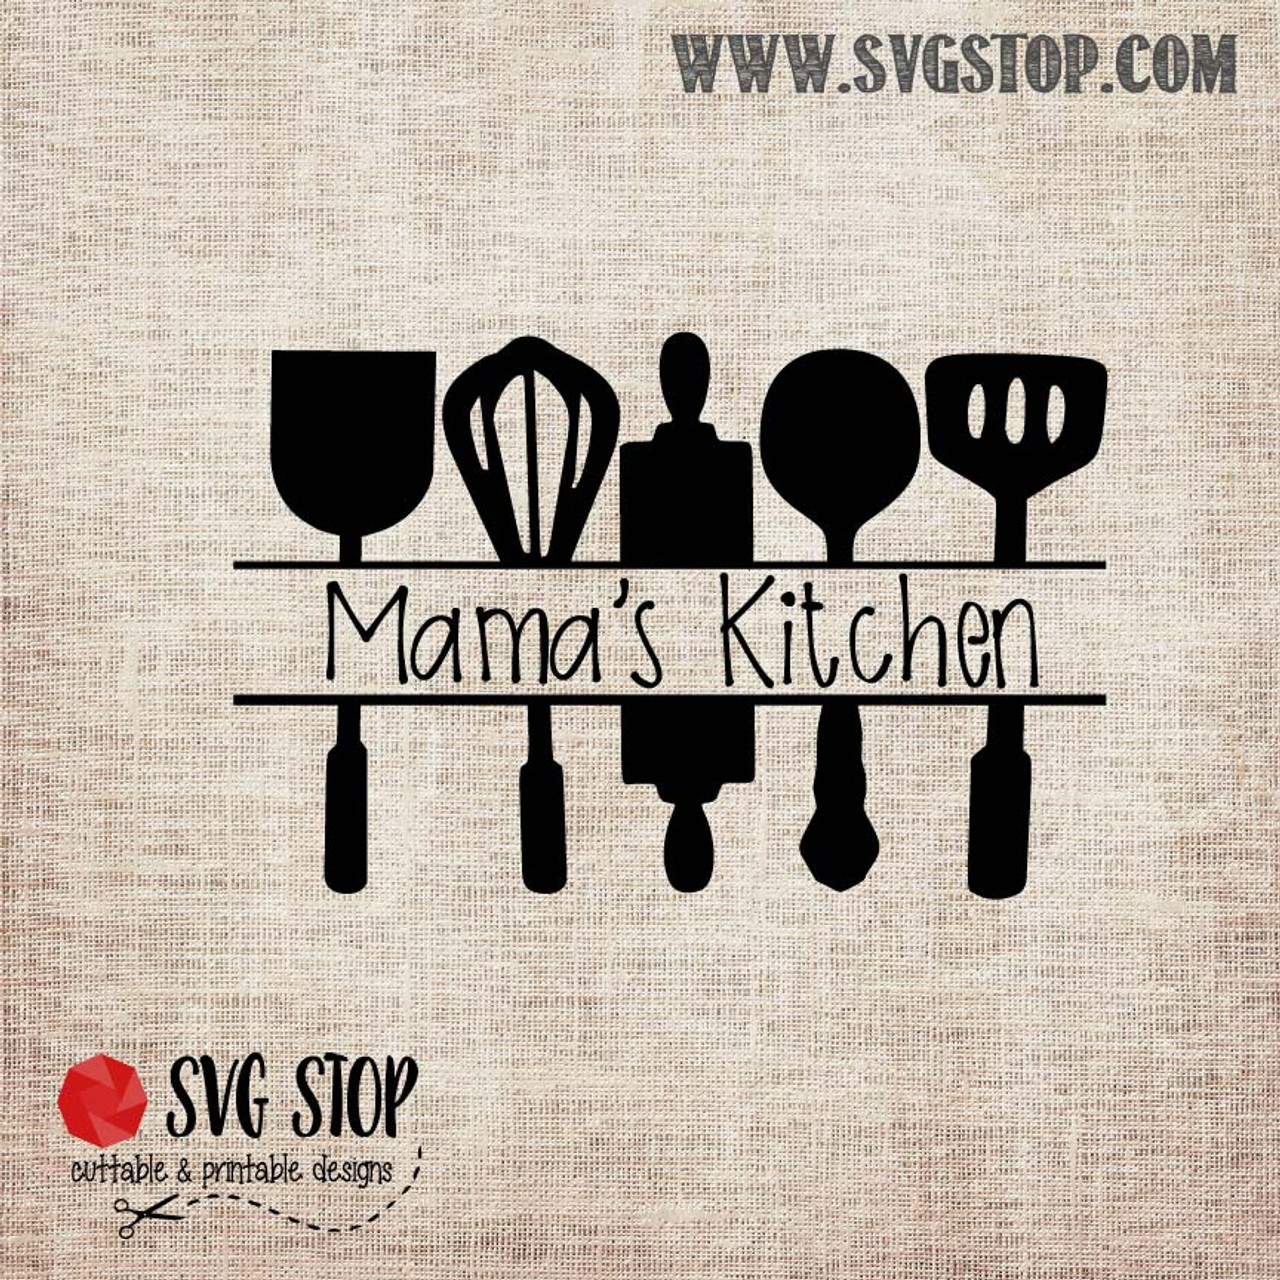 Download Kitchen Utensils Cut File | The SVG Stop